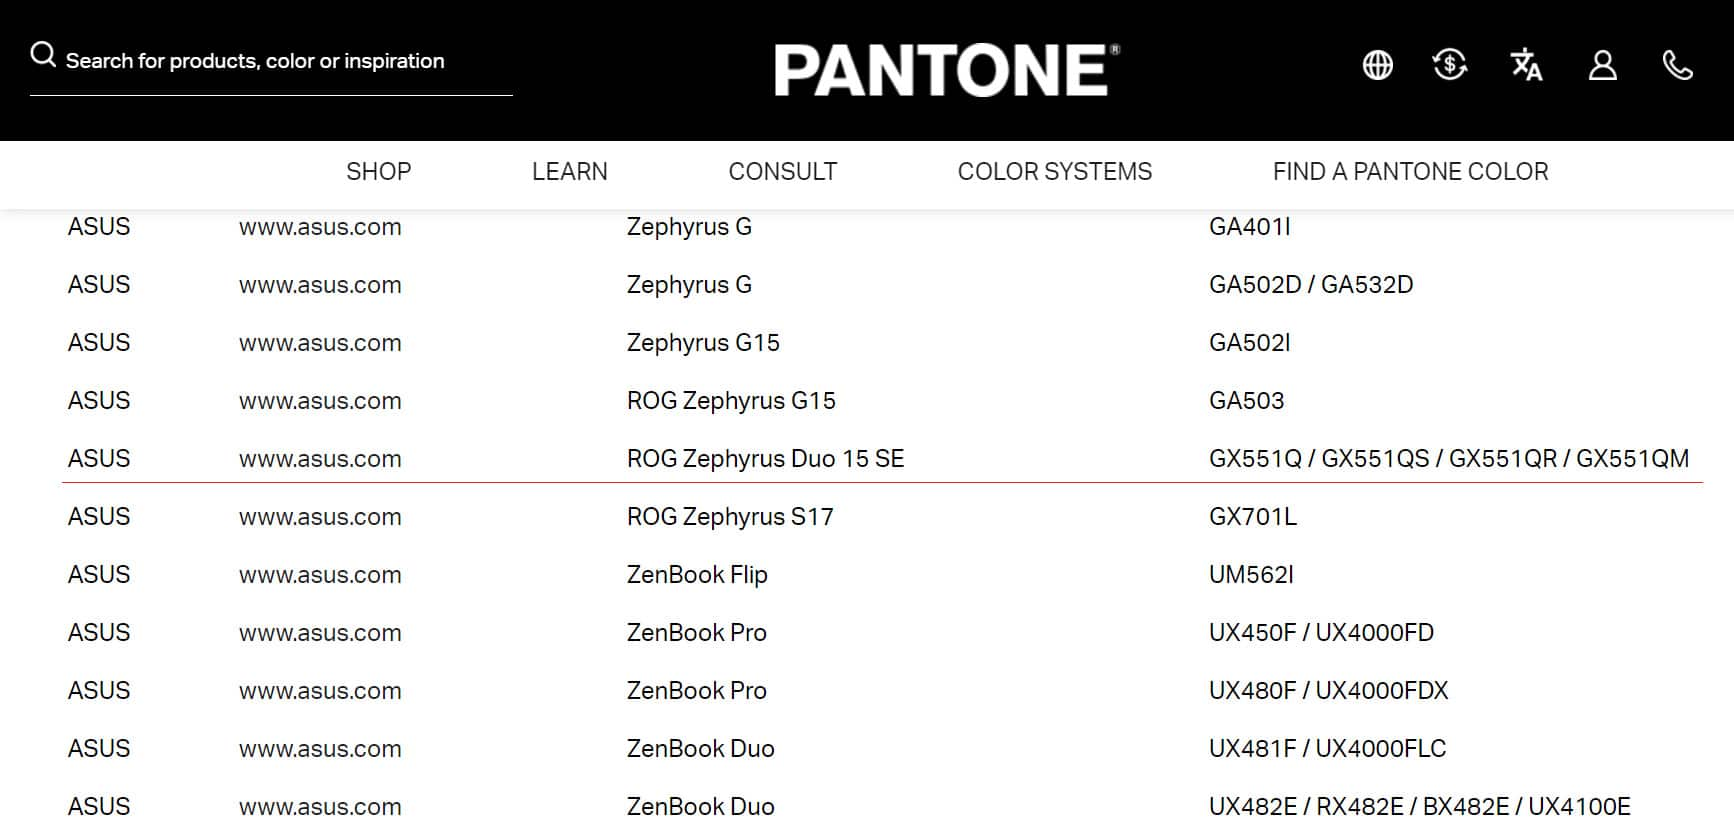 asus rog zephyrus duo 15 se gx551q pantone validation